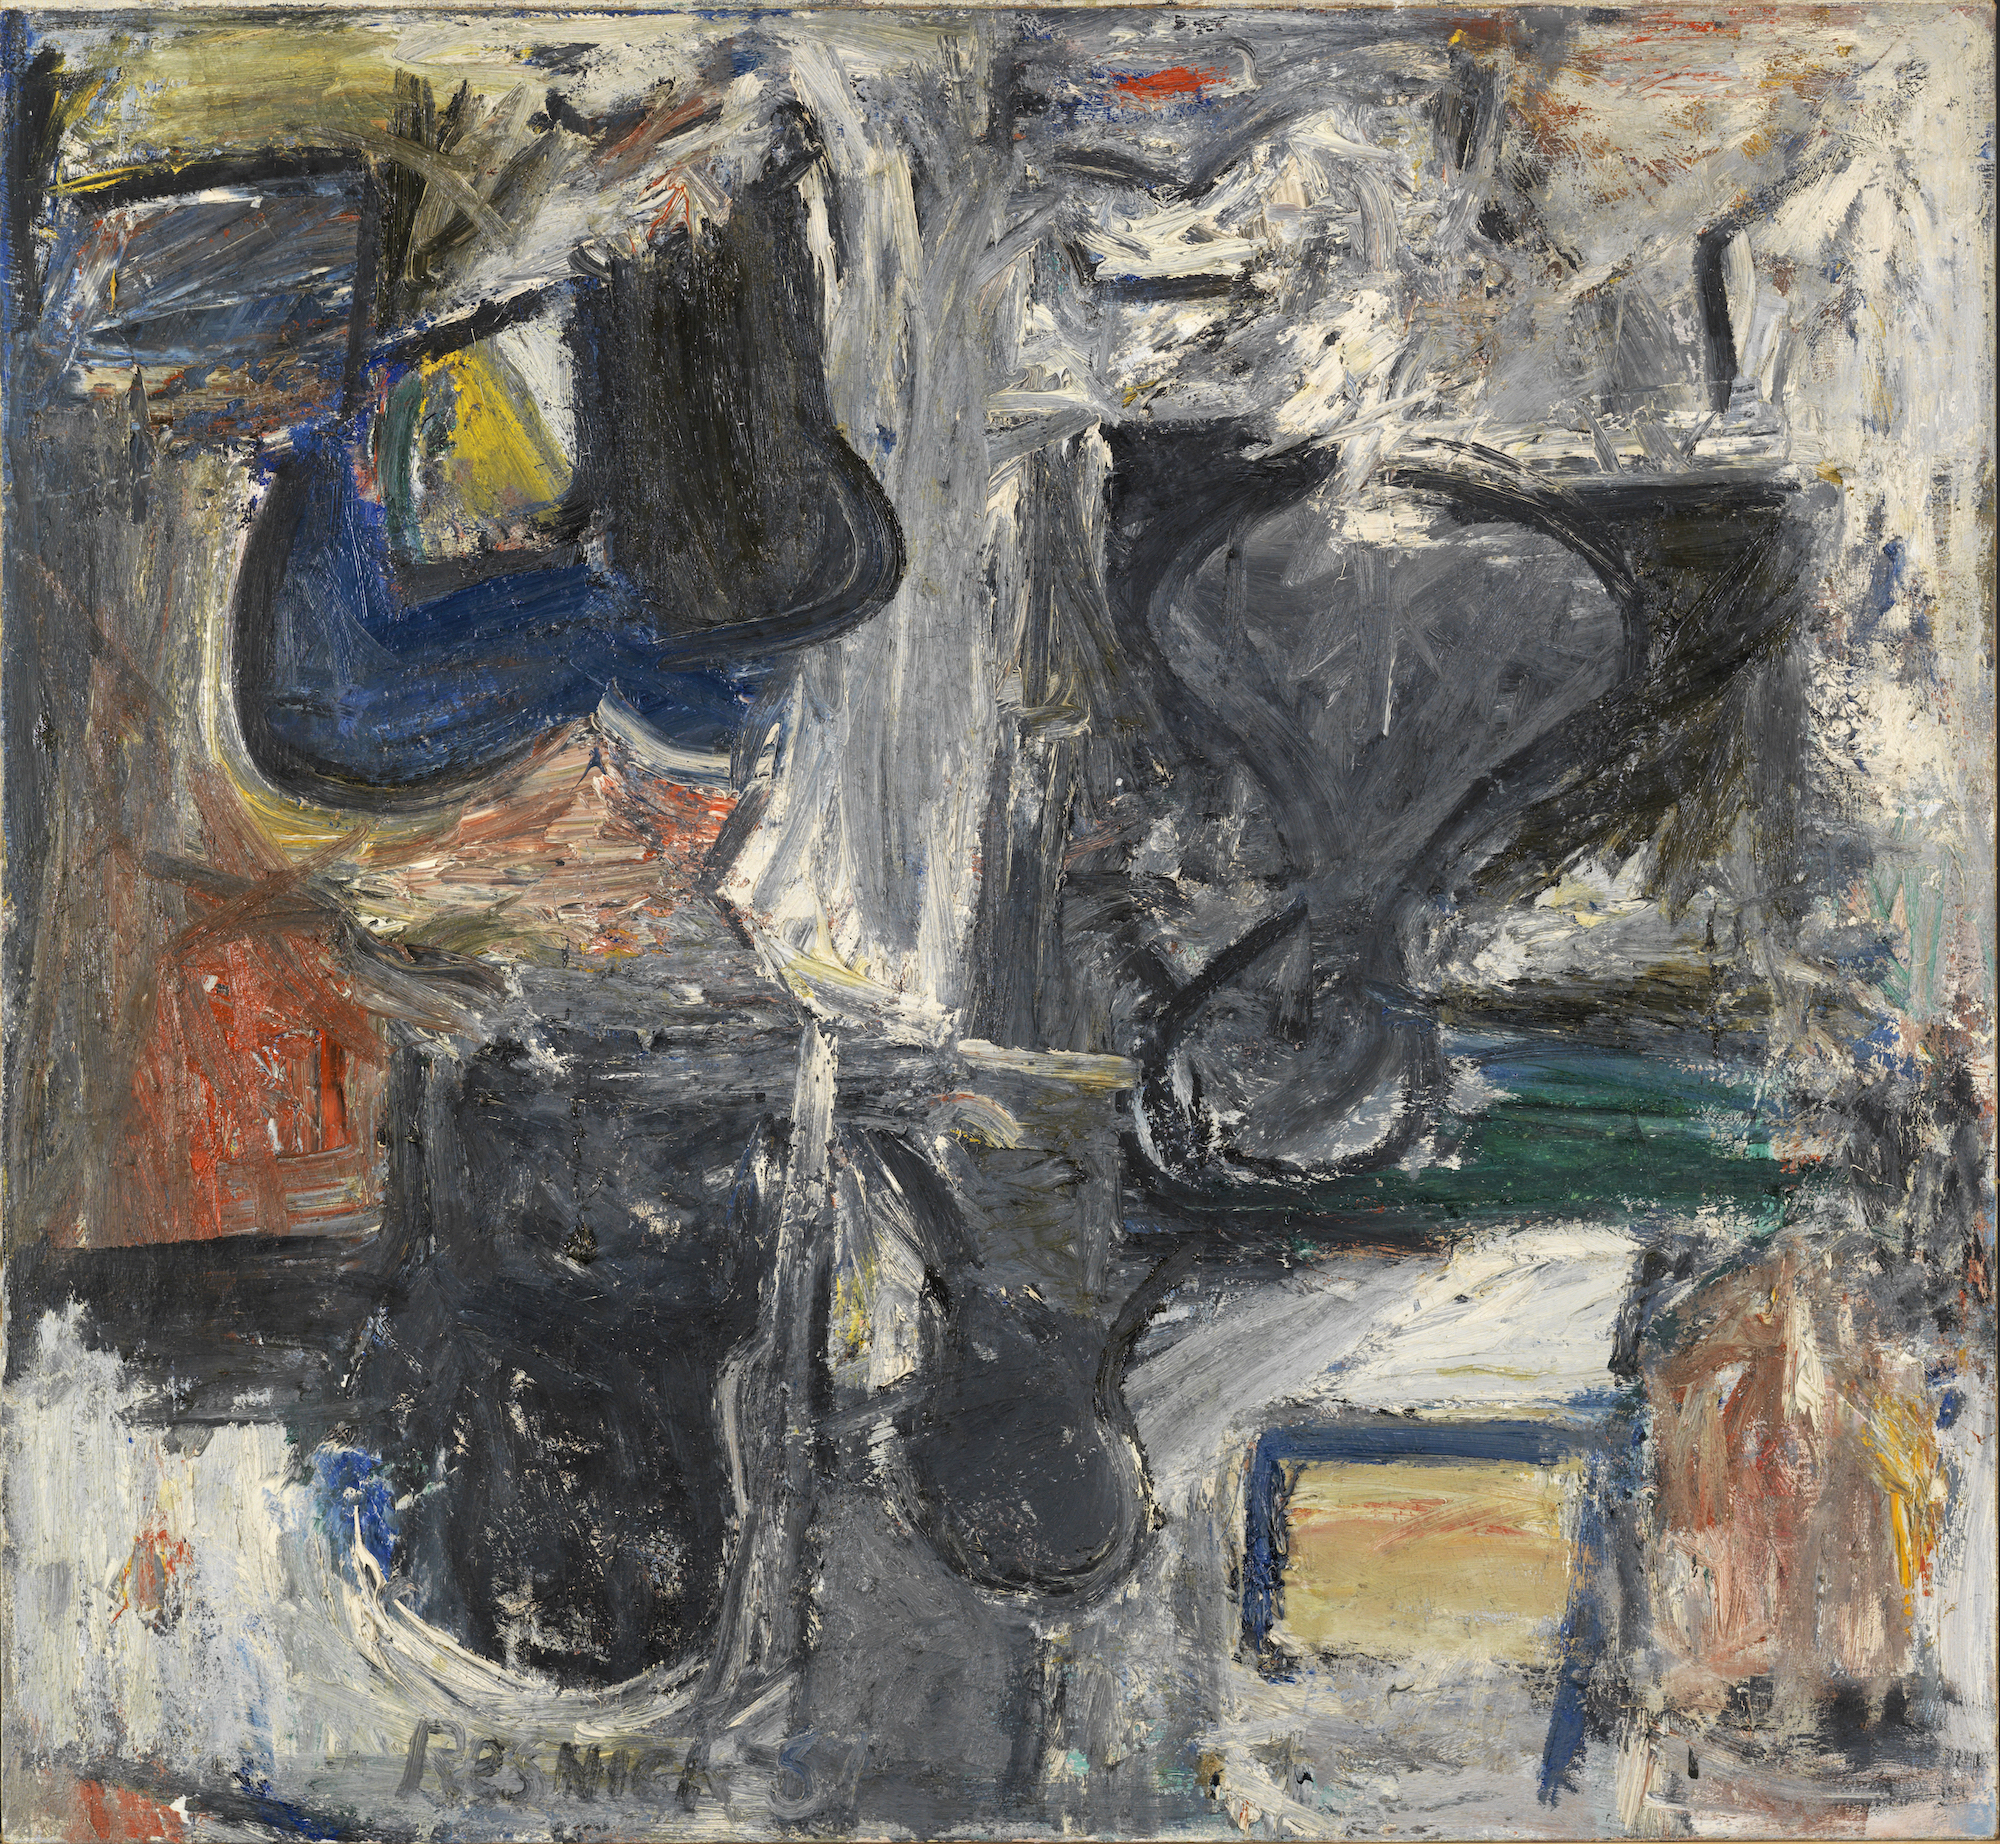 Milton Resnick  Untitled , 1957 Oil on canvas 58 x 63 inches